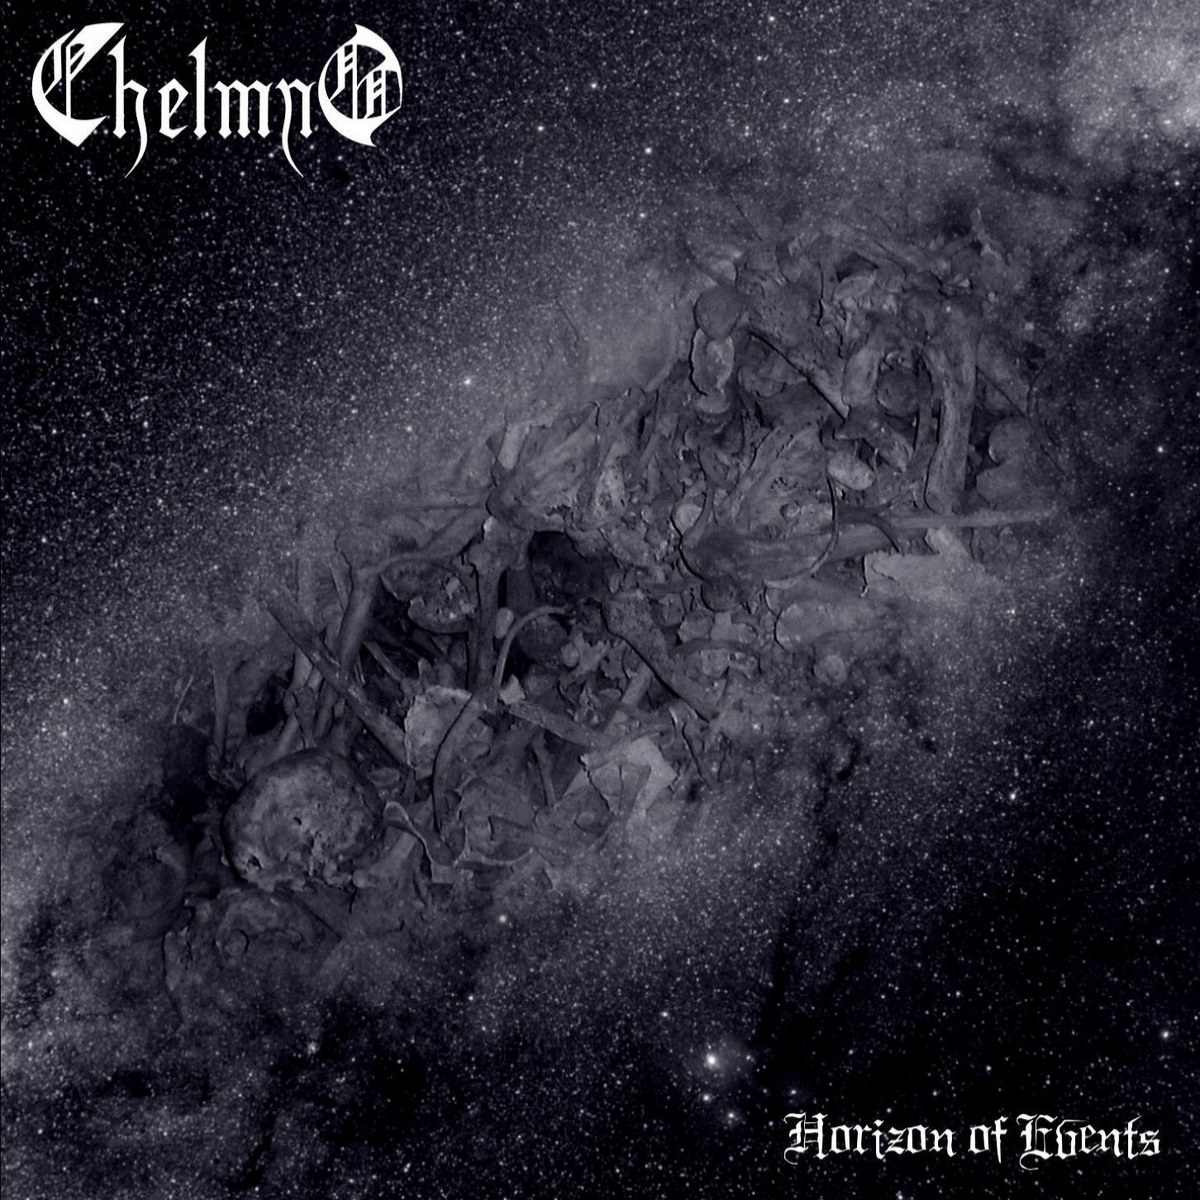 Review for Chelmno - Horizon of Events